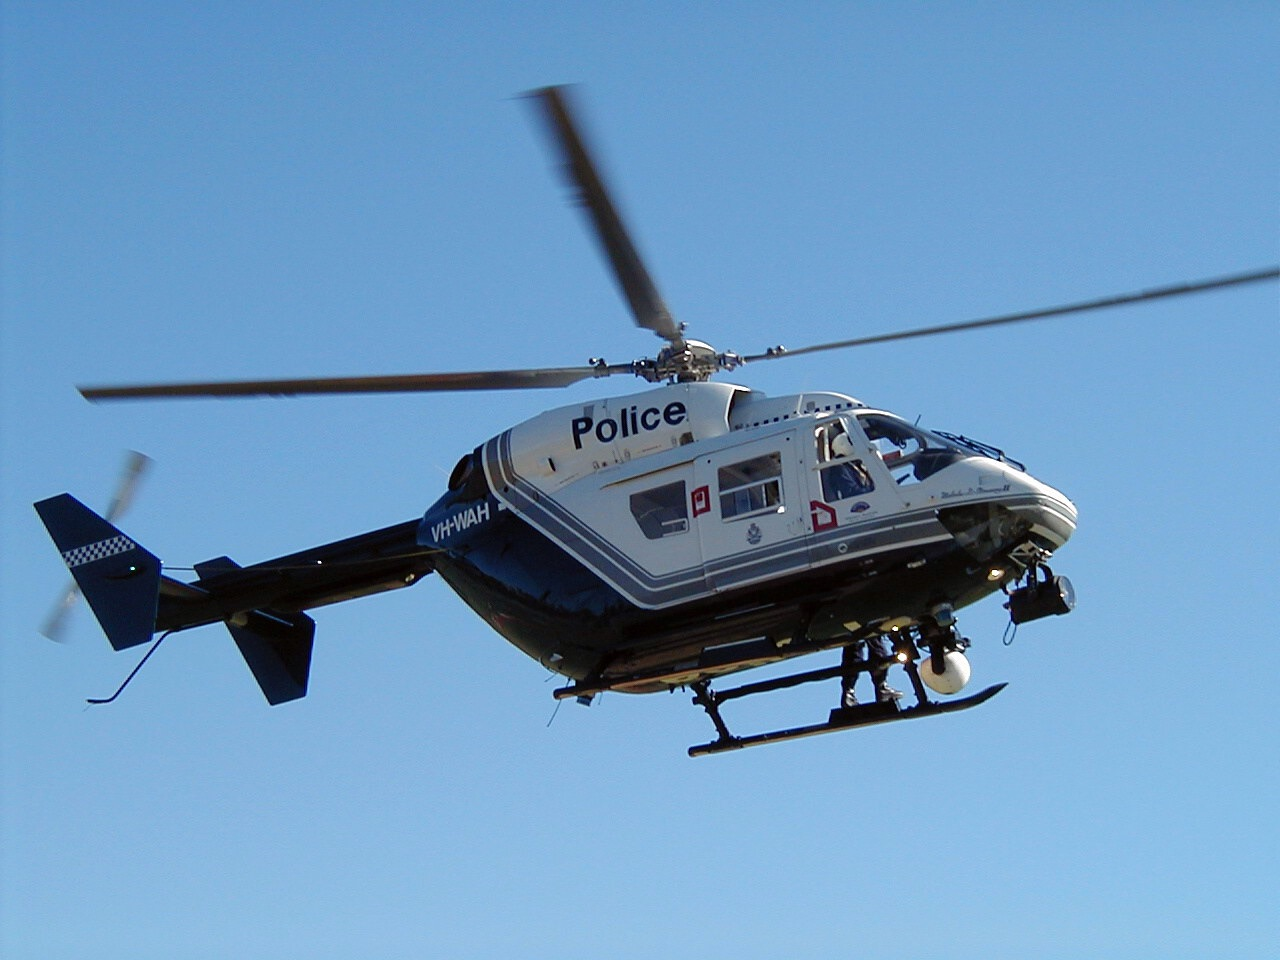 Helicopter K9 Aid In Suspect Arrest